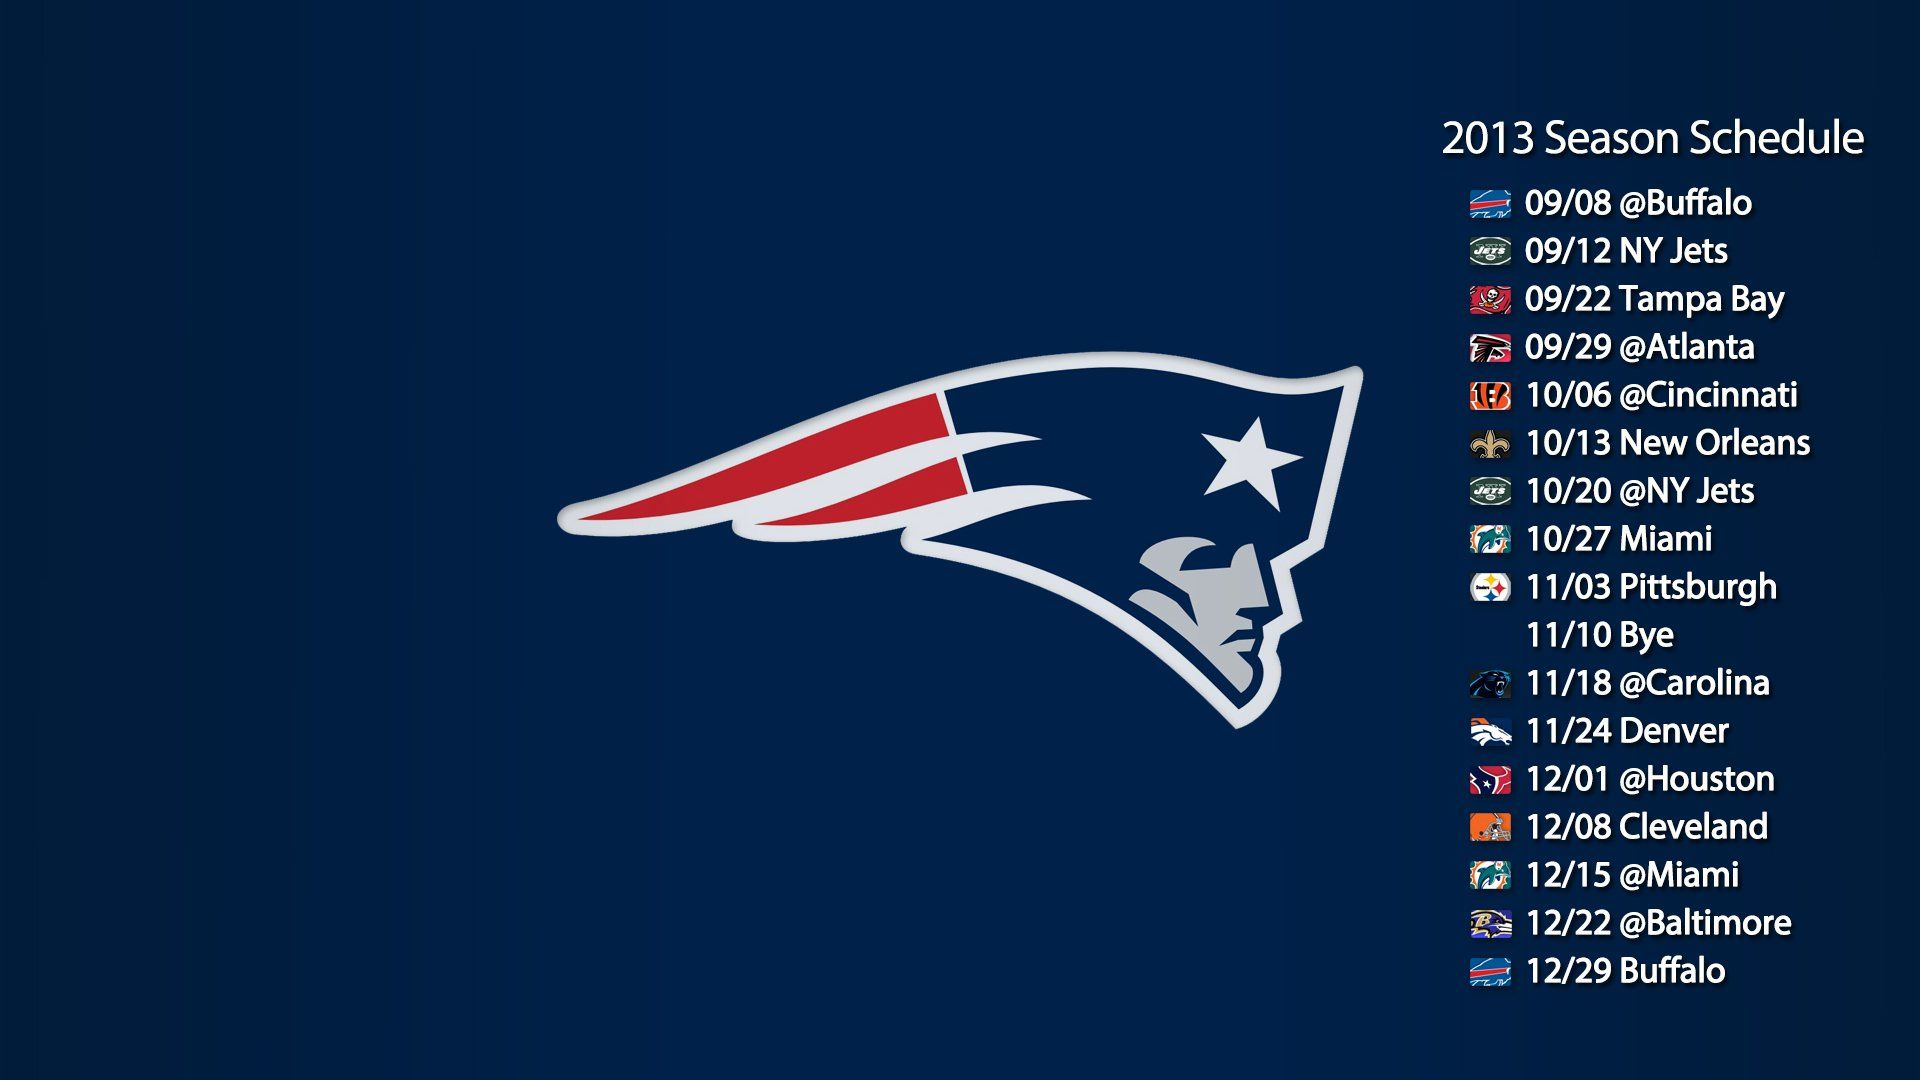 New england patriots wallpaper free android app market hd new england patriots wallpaper free android app market voltagebd Choice Image